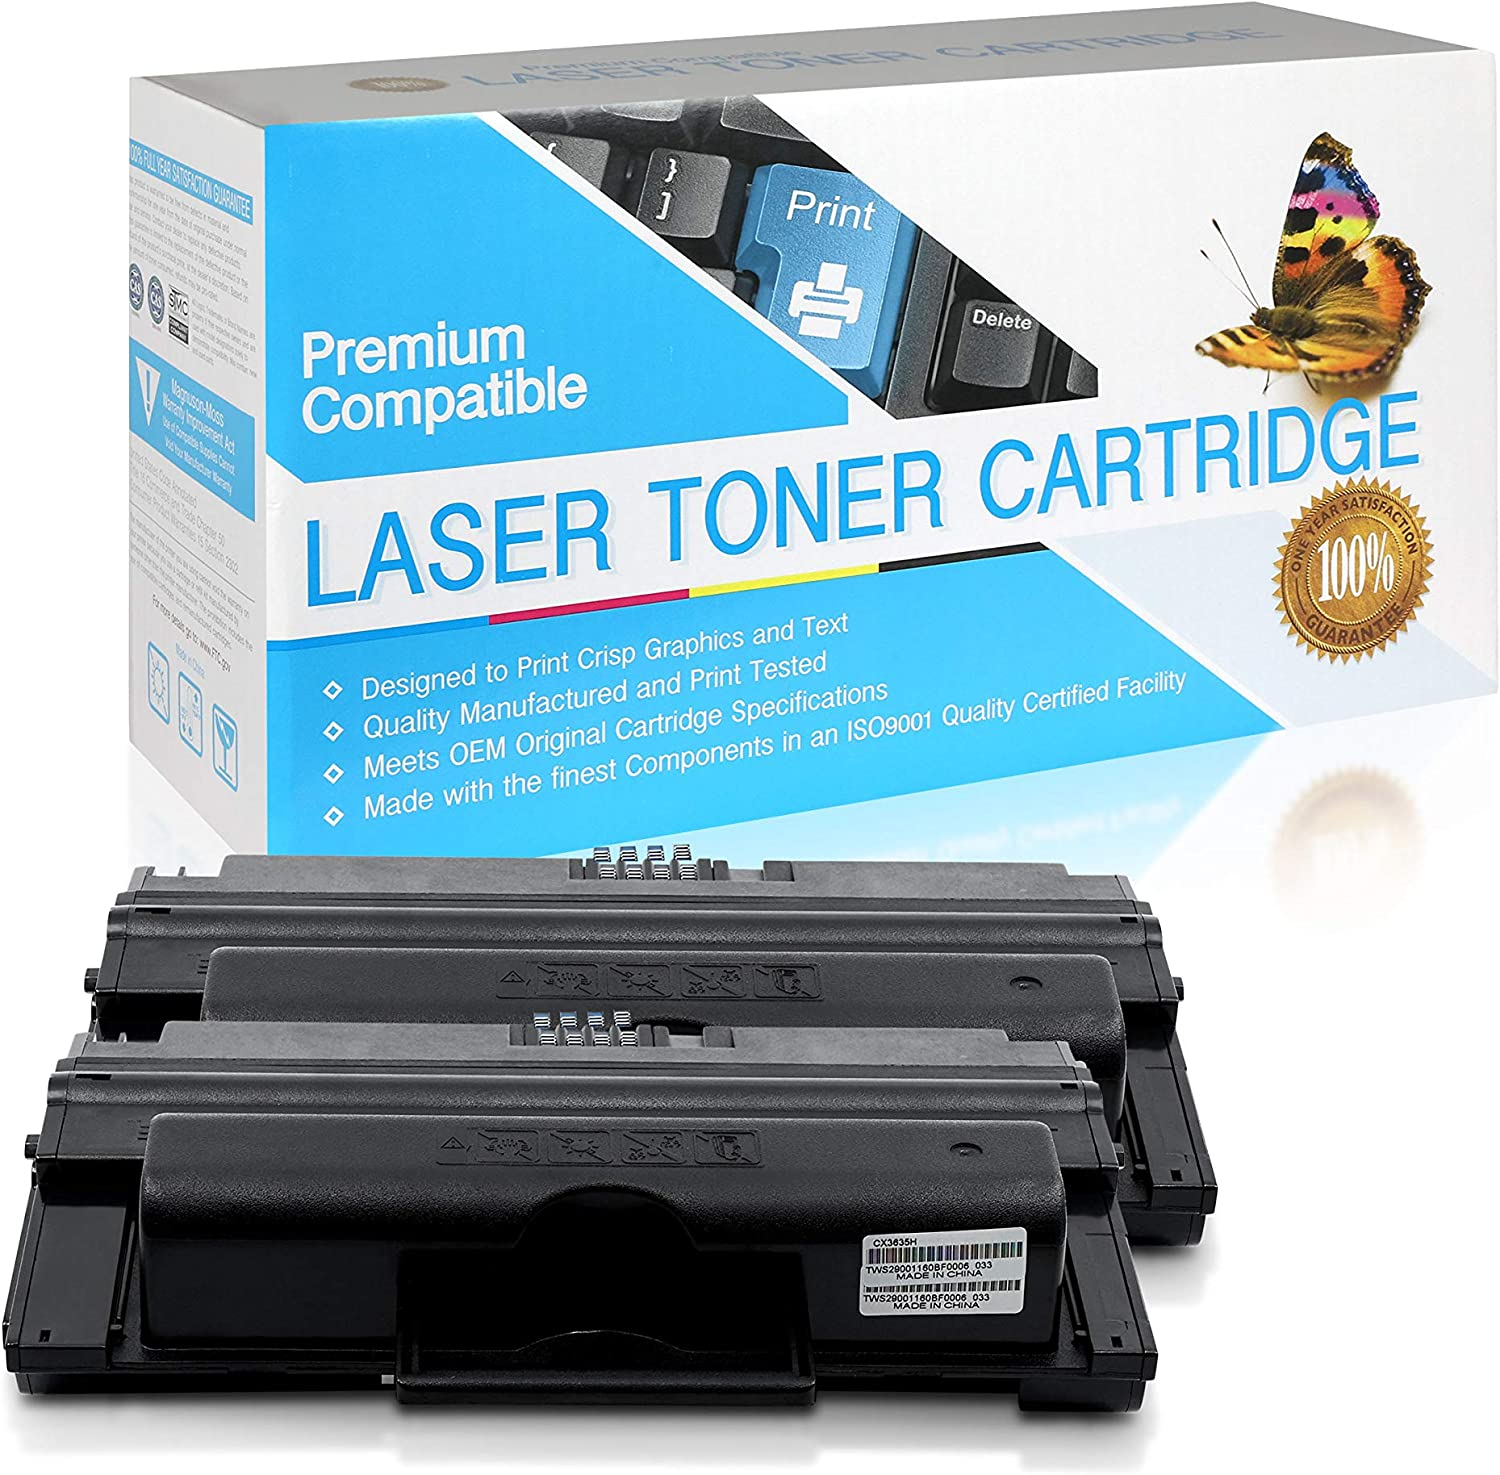 108R795 Black,2 Pack 108R00793 SuppliesOutlet Compatible Toner Cartridge Replacement for Xerox 3635 108R00795 108R793